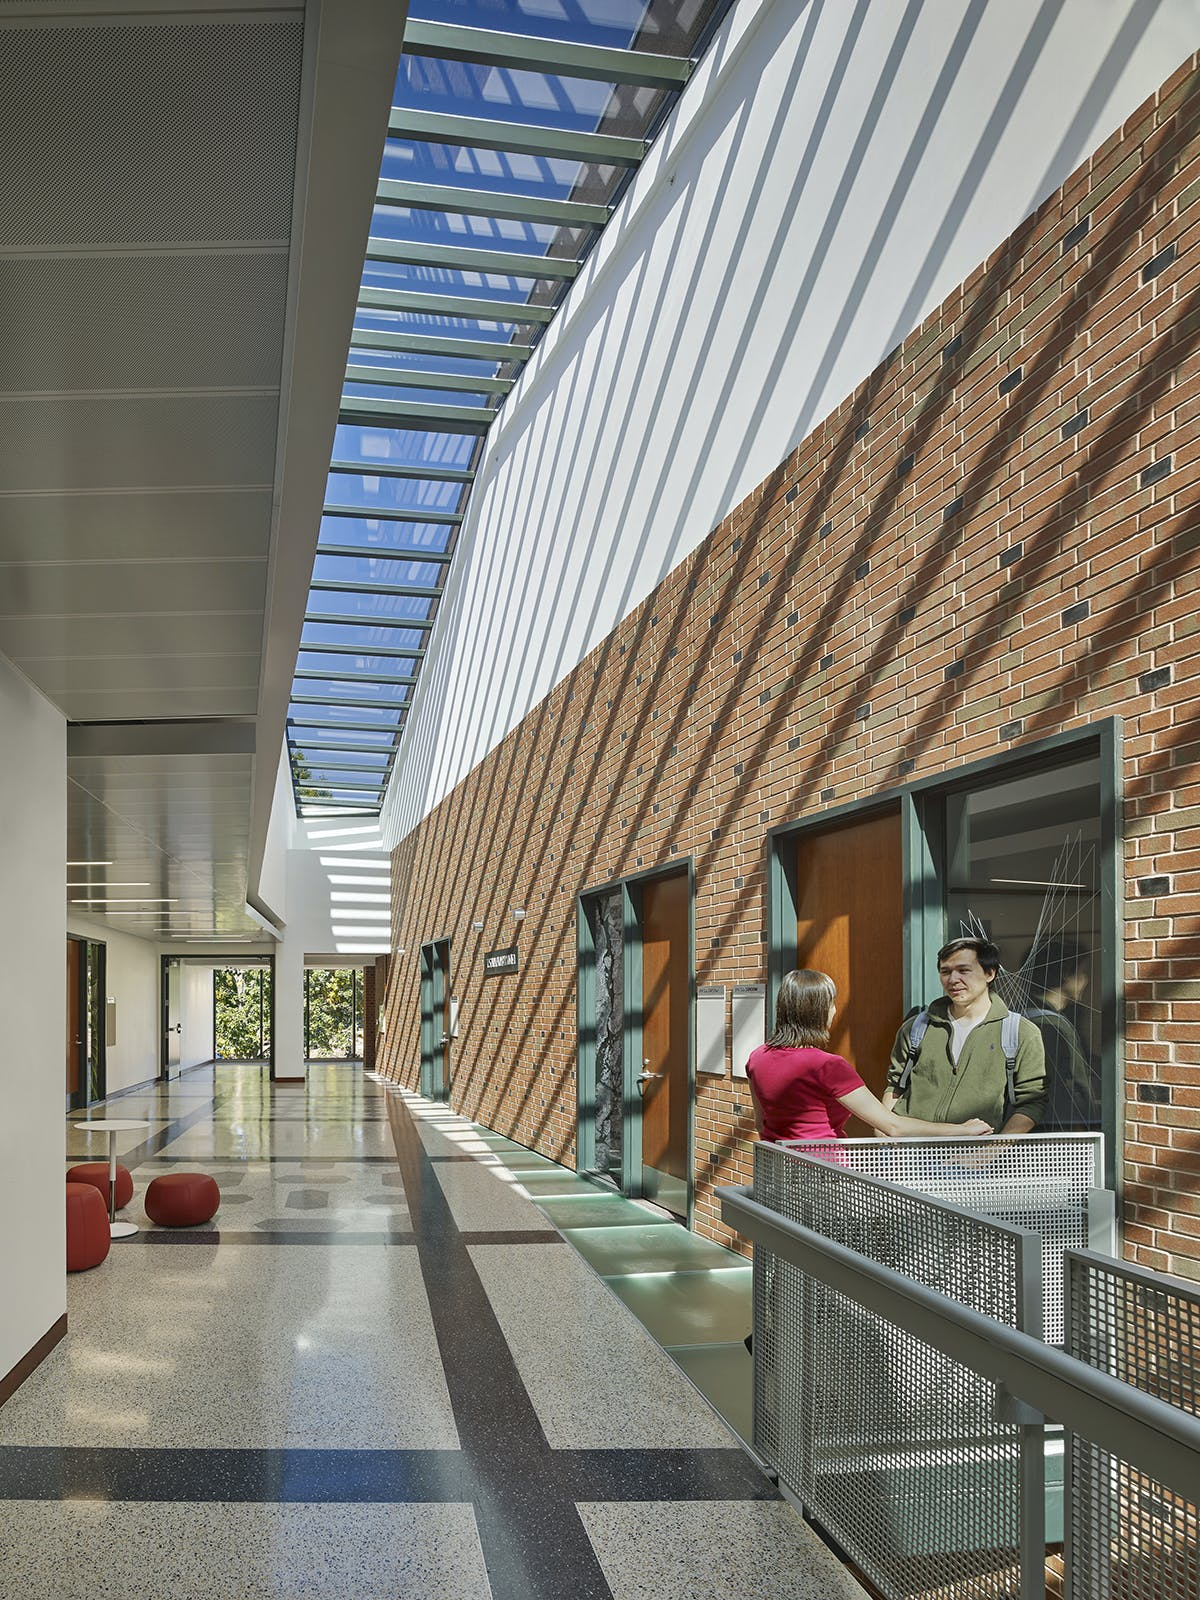 Lawrenceville Kirby Math And Science Building Studio